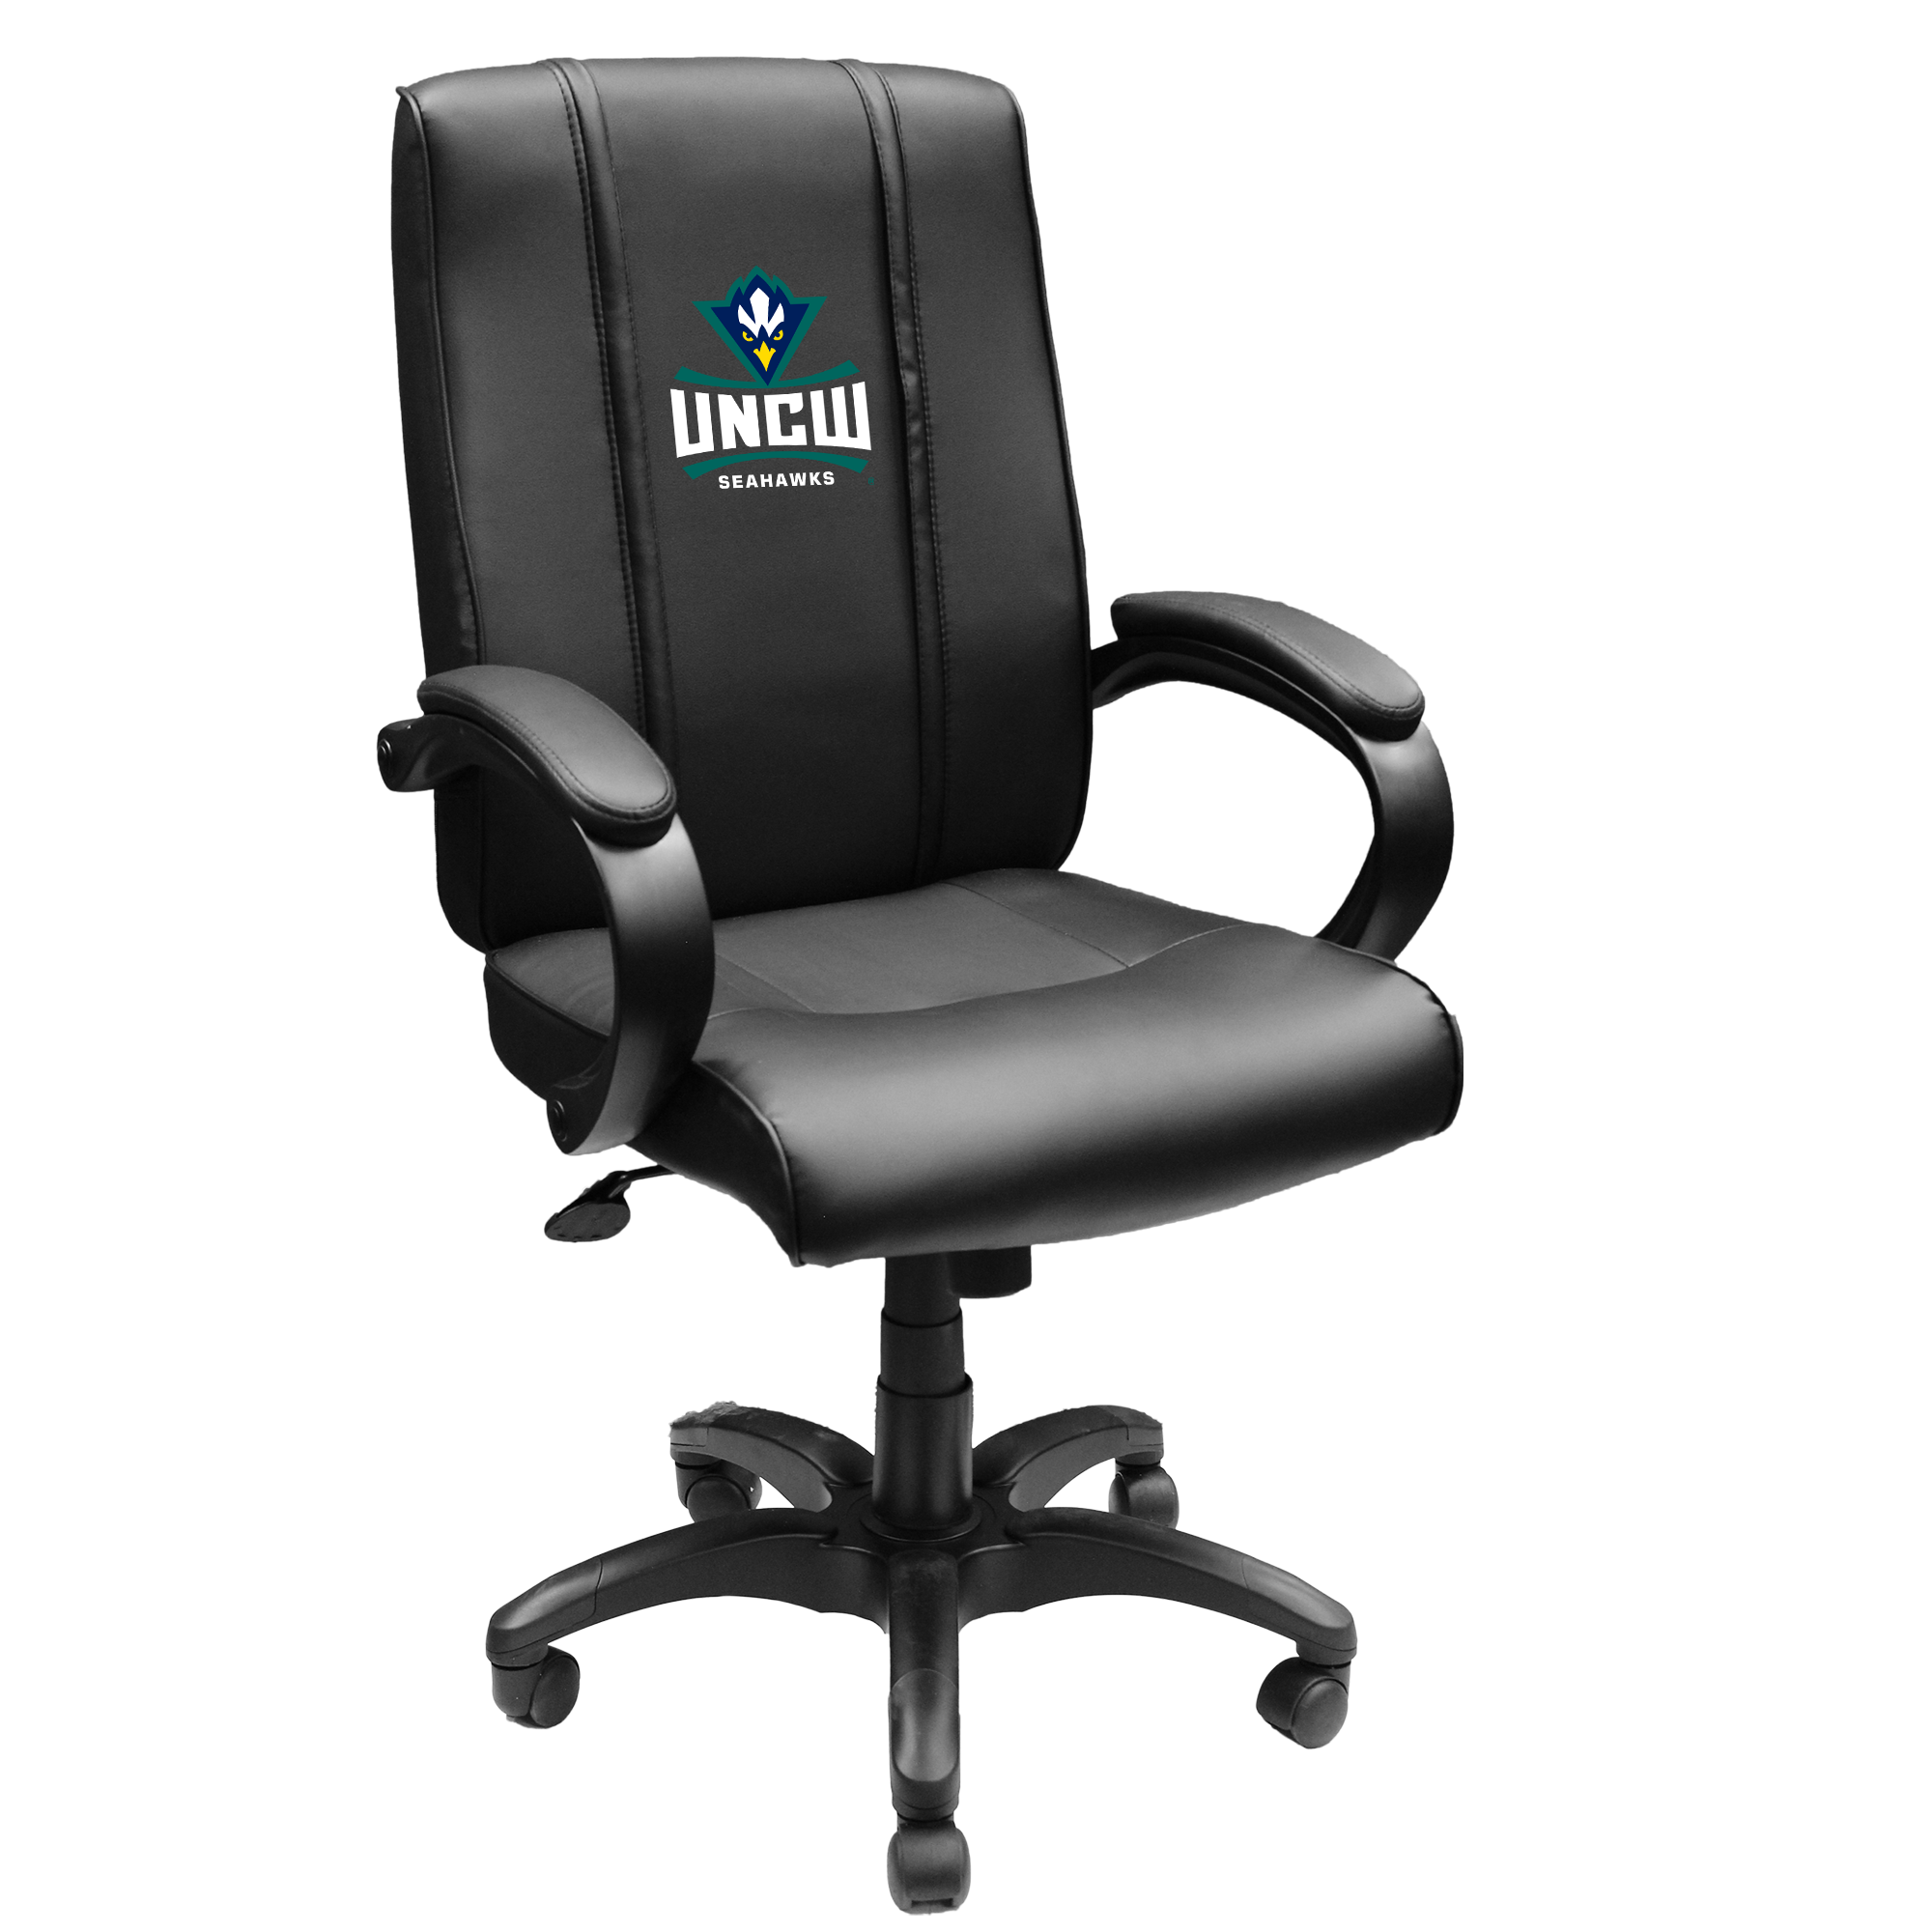 Office Chair 1000 with Virginia Cavaliers Logo